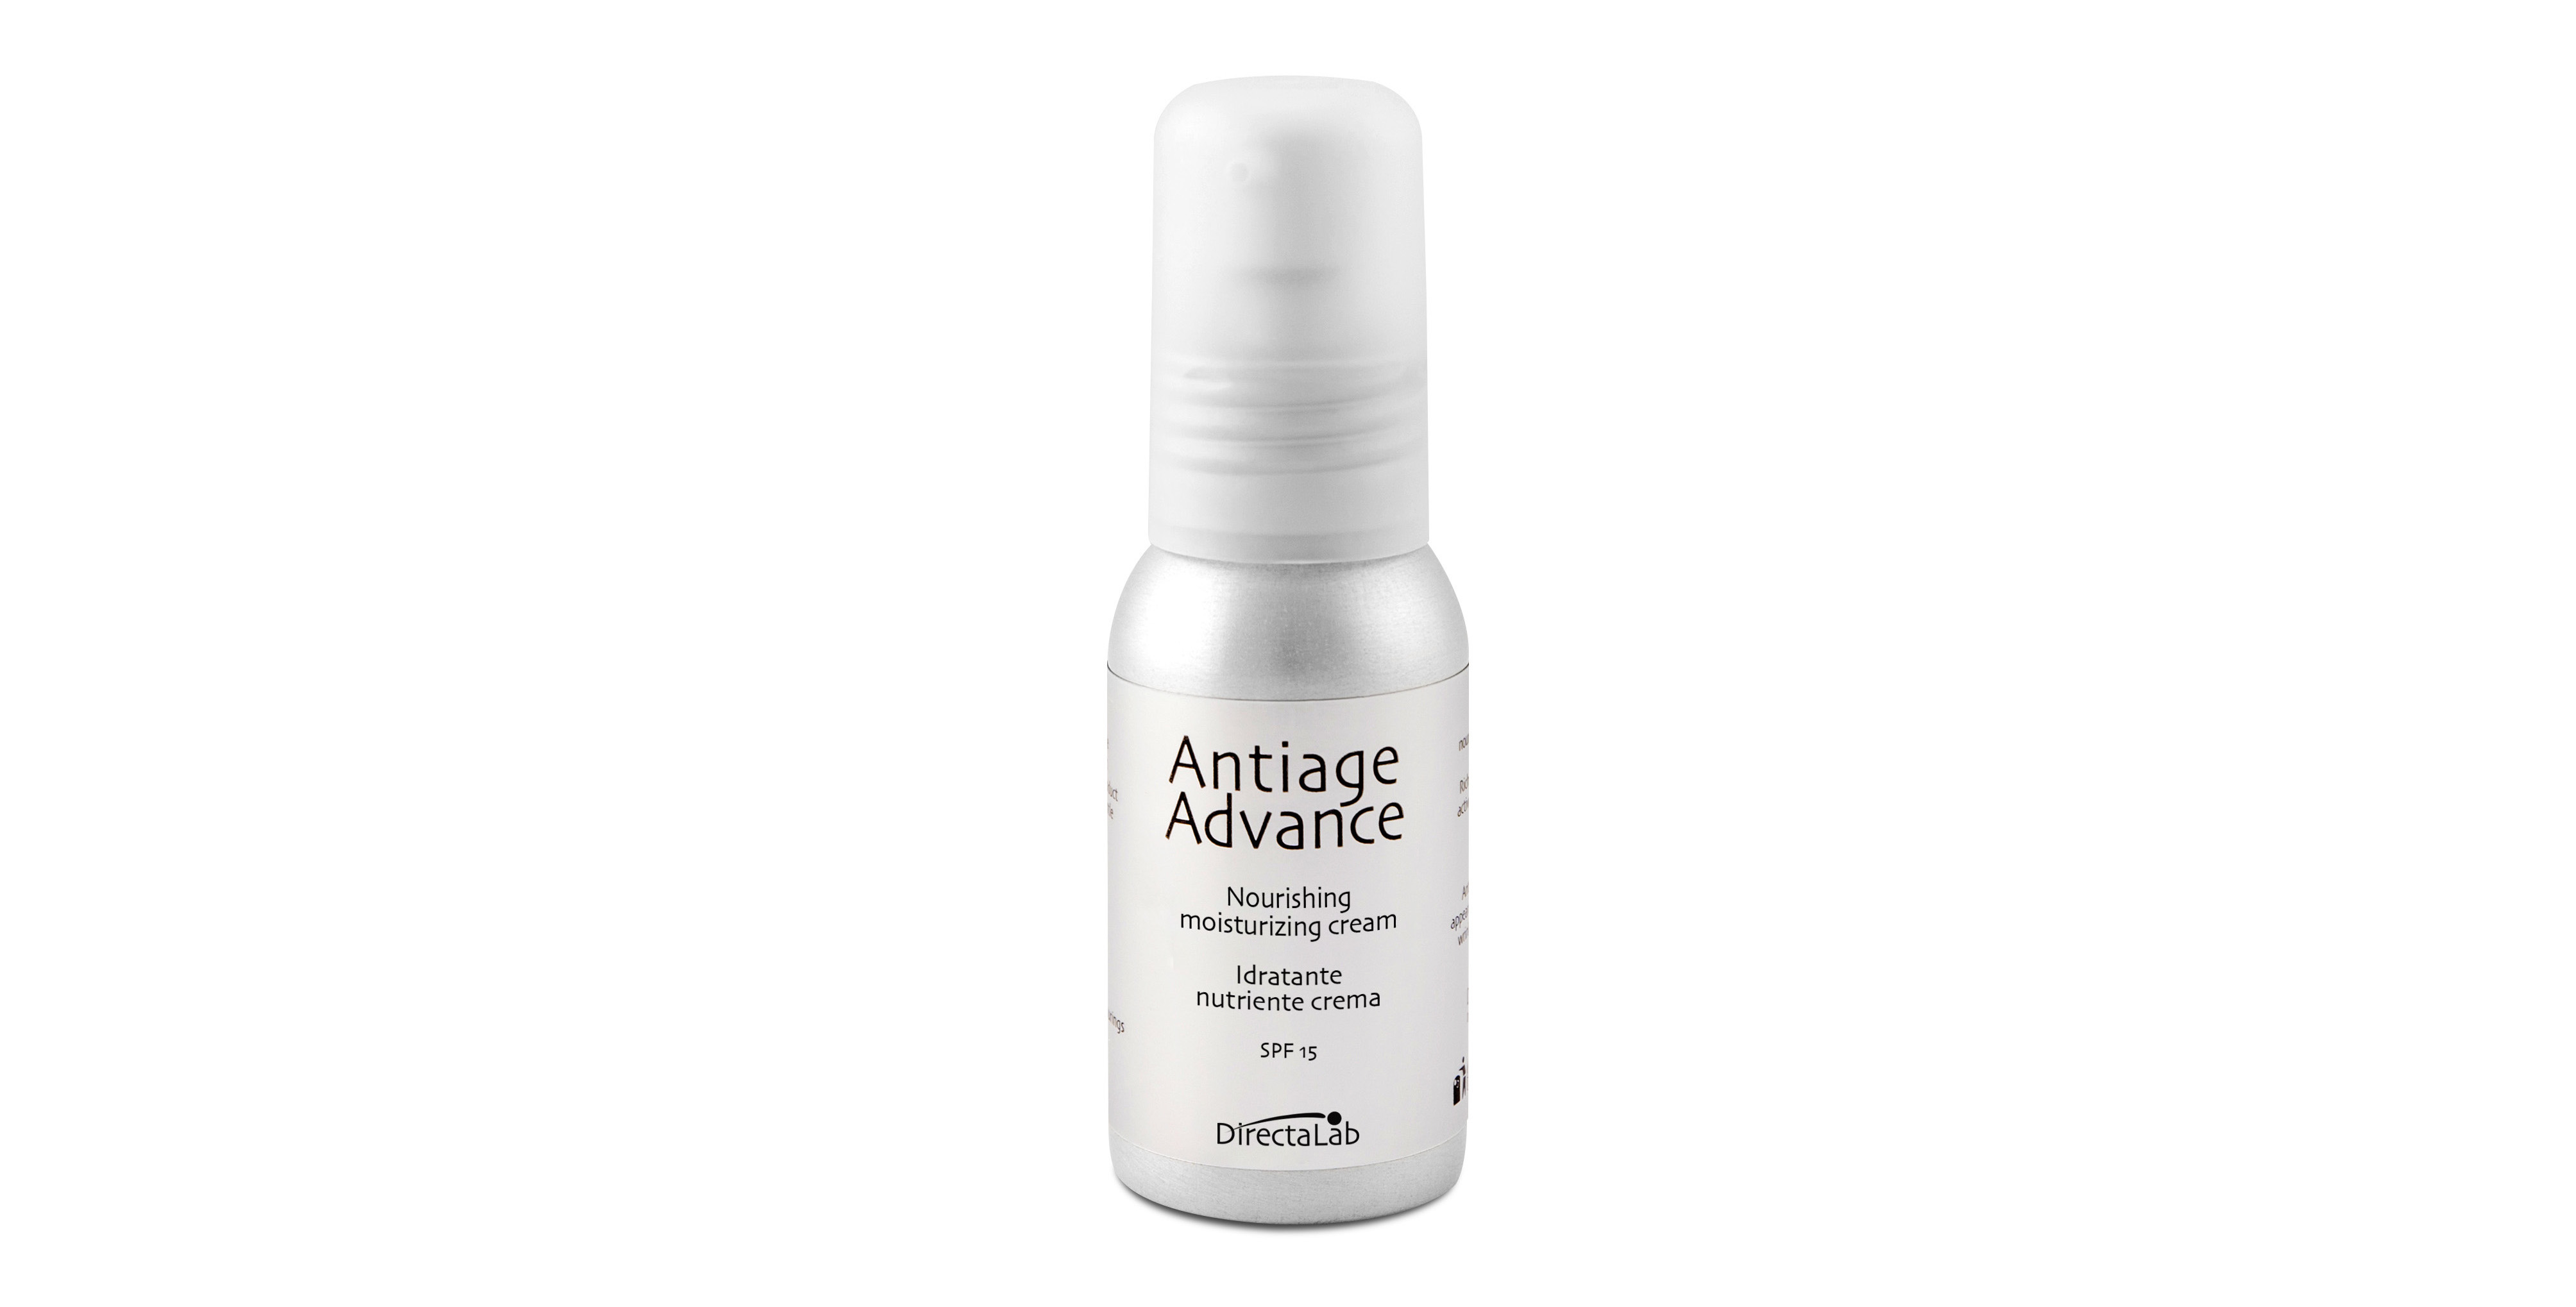 P Antiage Advance